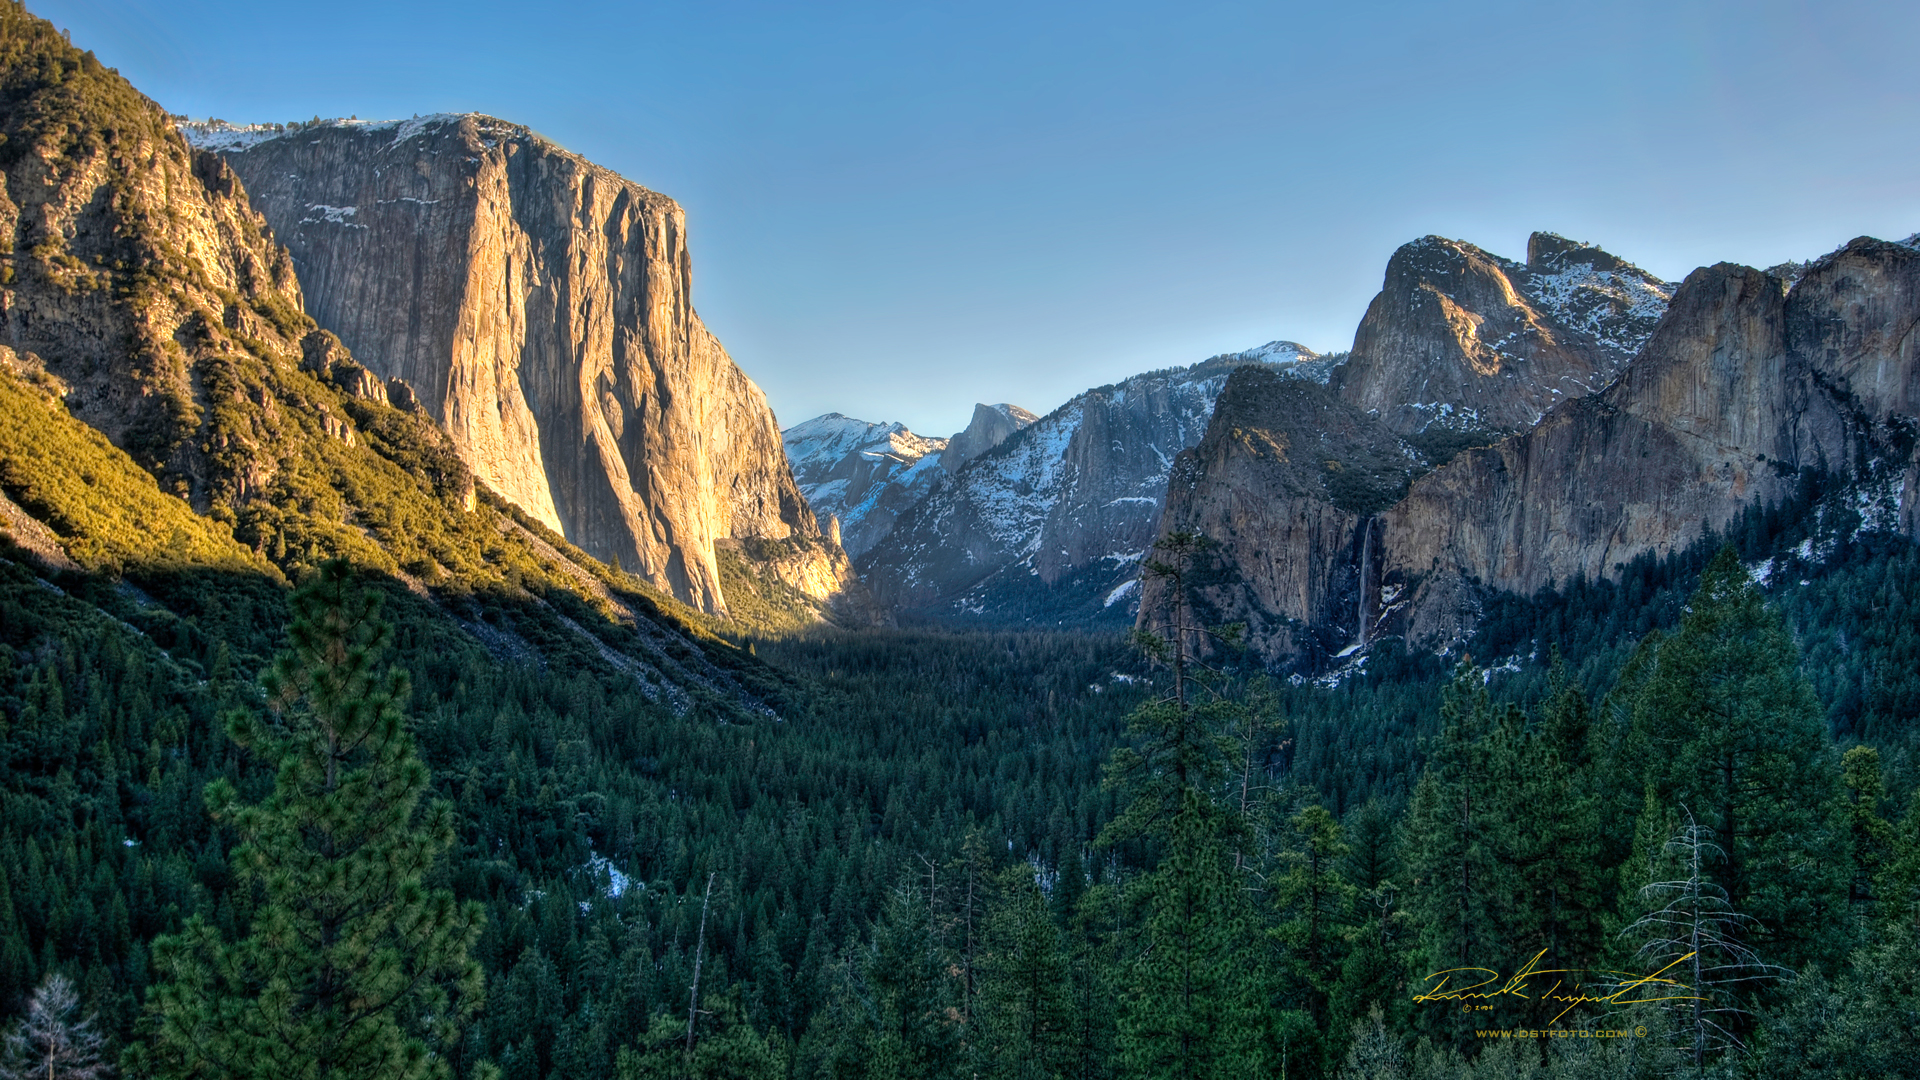 Yosemite hd wallpapers wallpapersafari - Yosemite national park hd wallpaper ...